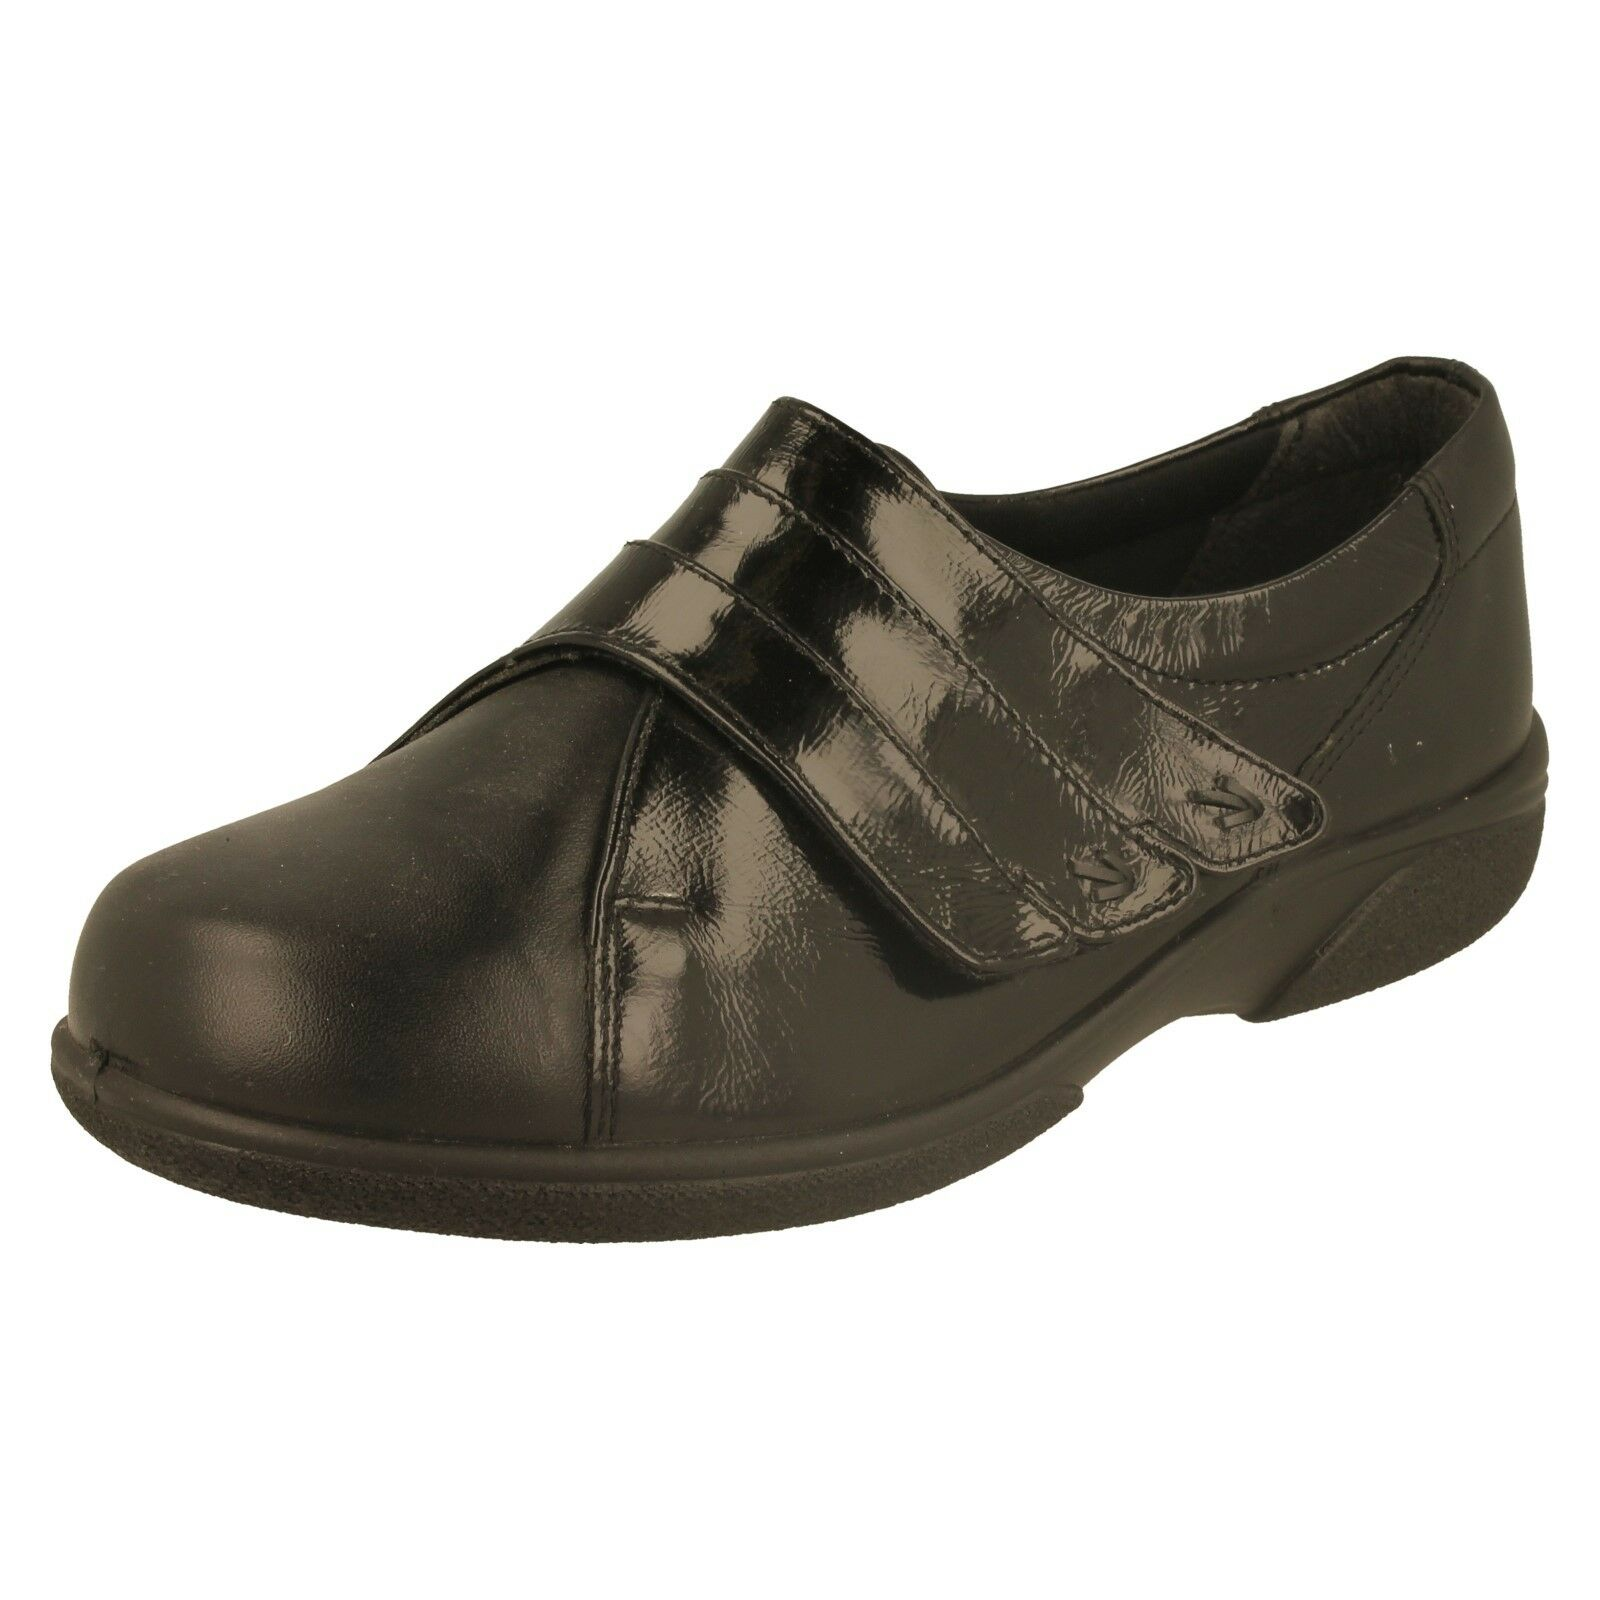 Ladies Easy B Wide Fitting shoes - 70213Q (Seconds)